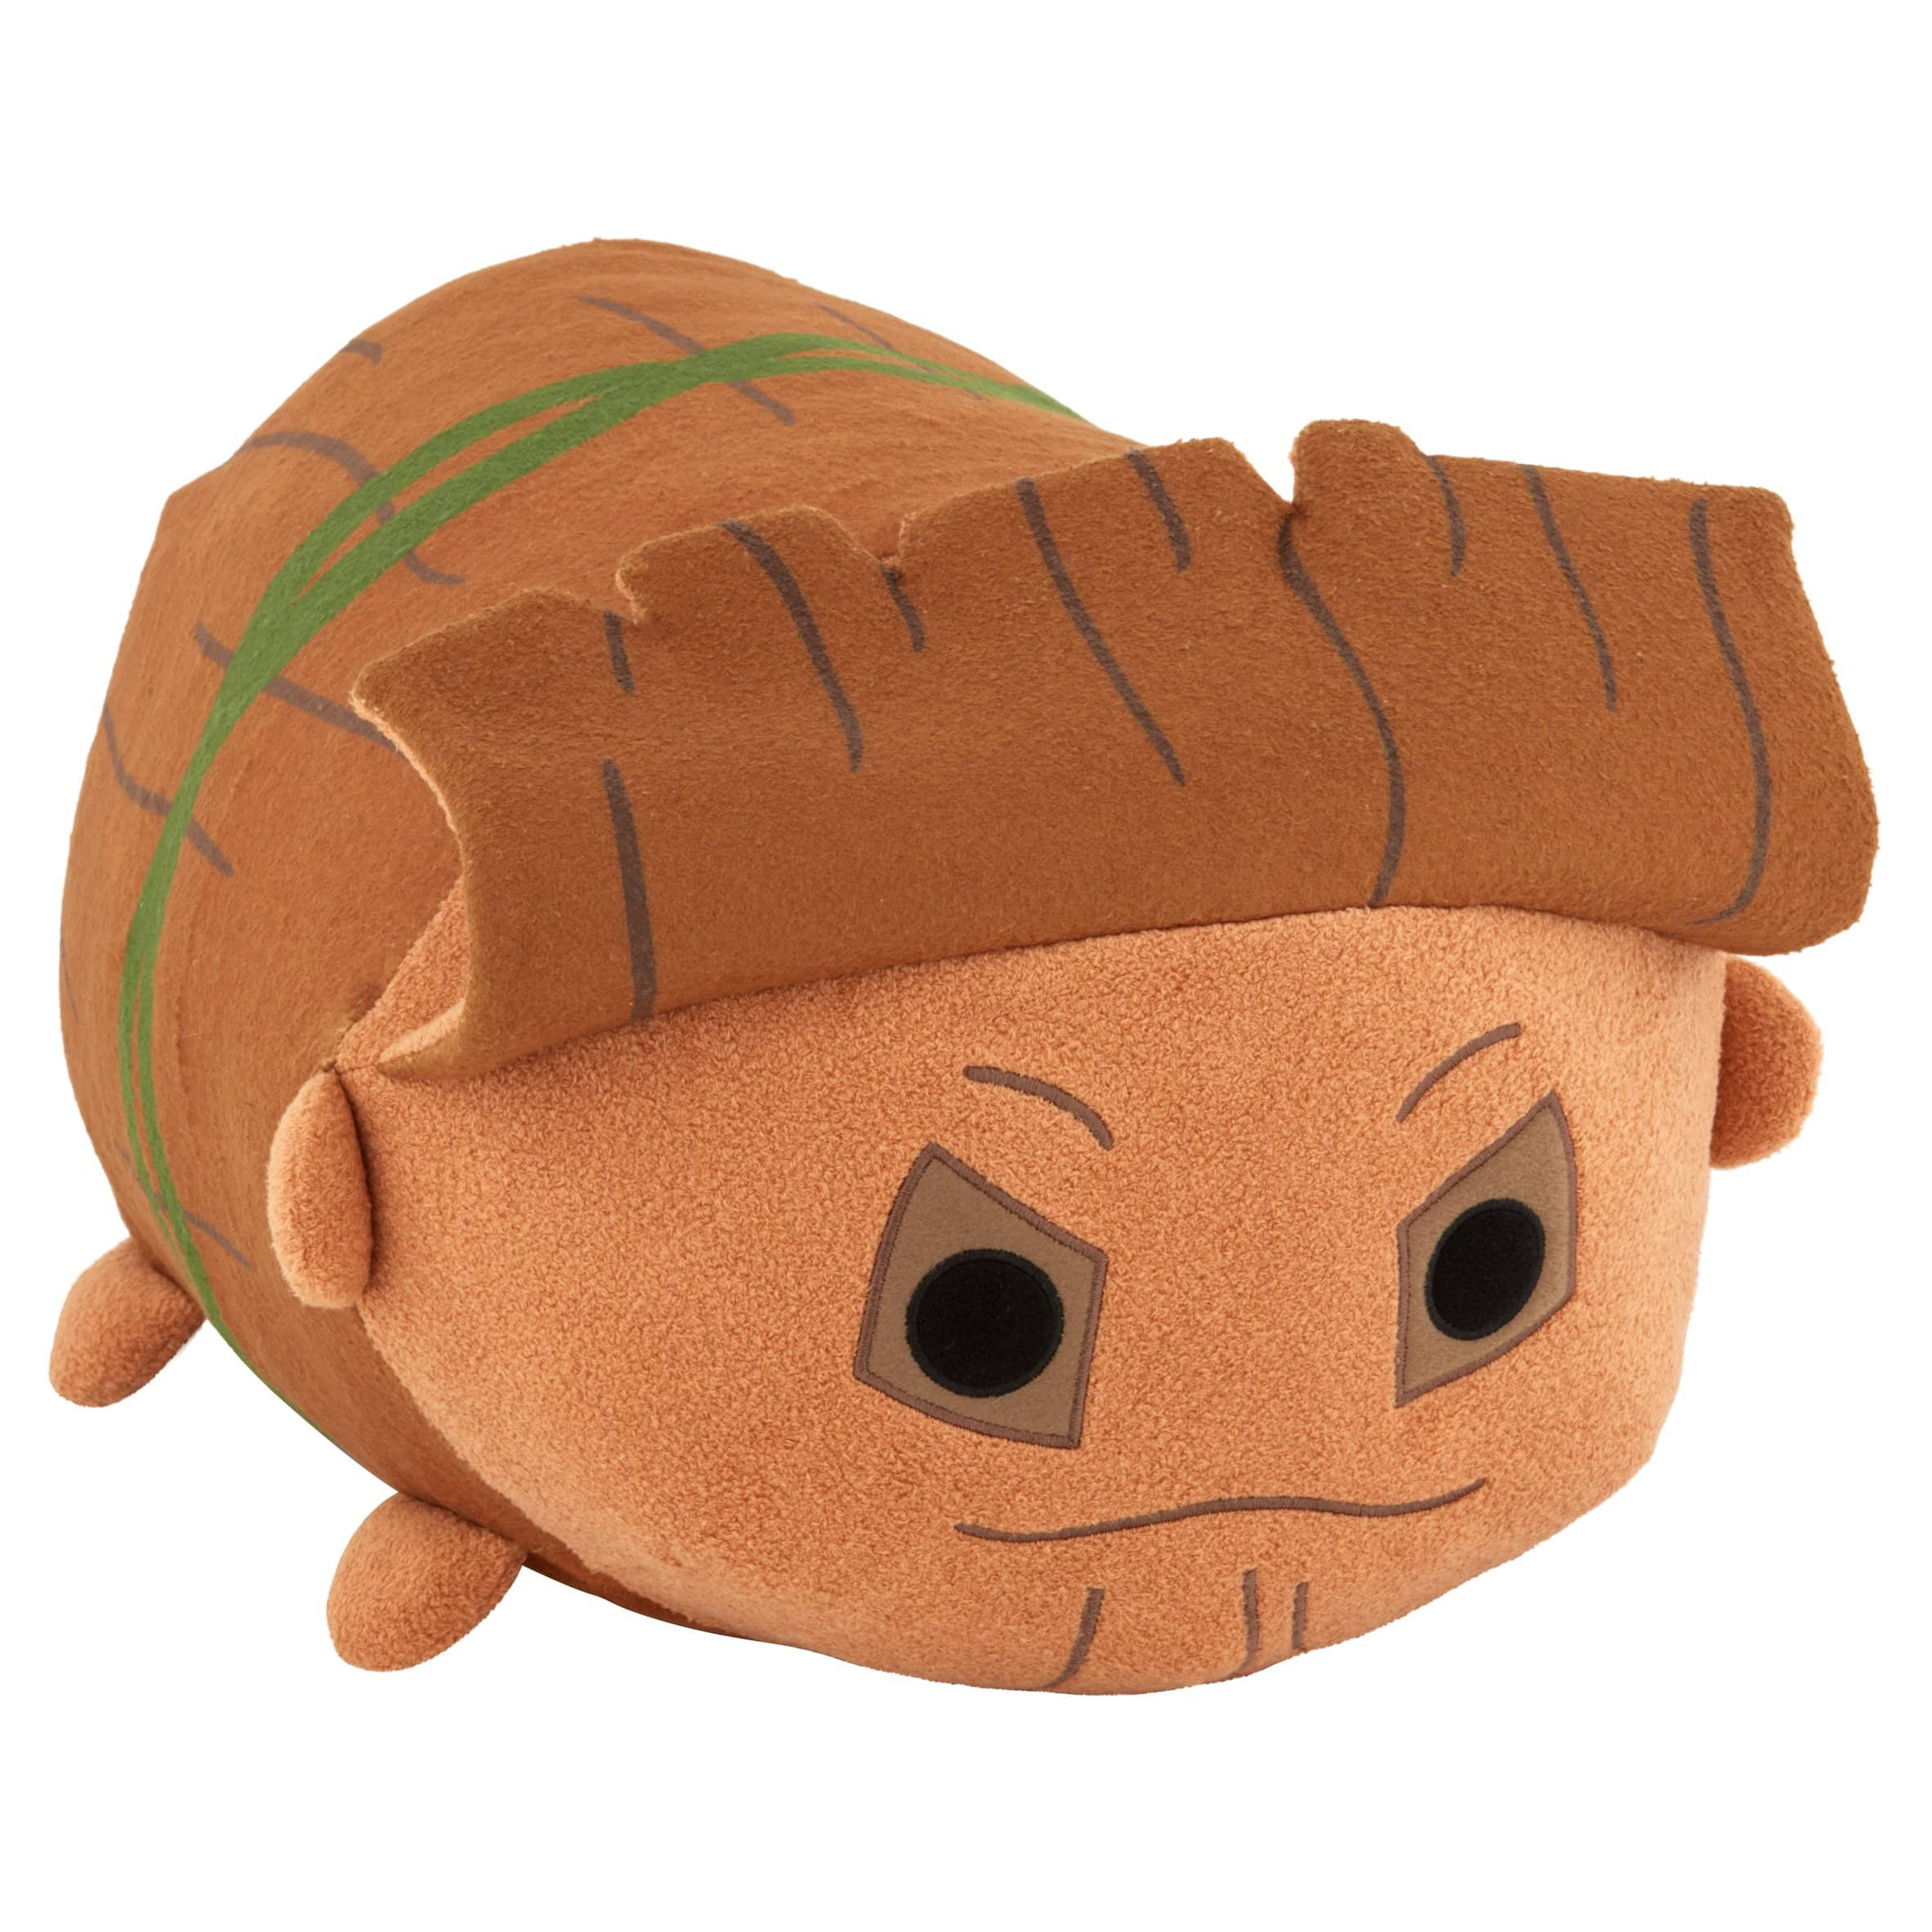 "Disney Tsum Tsum Guardians of the Galaxy Groot 20"" Plush $4.99"